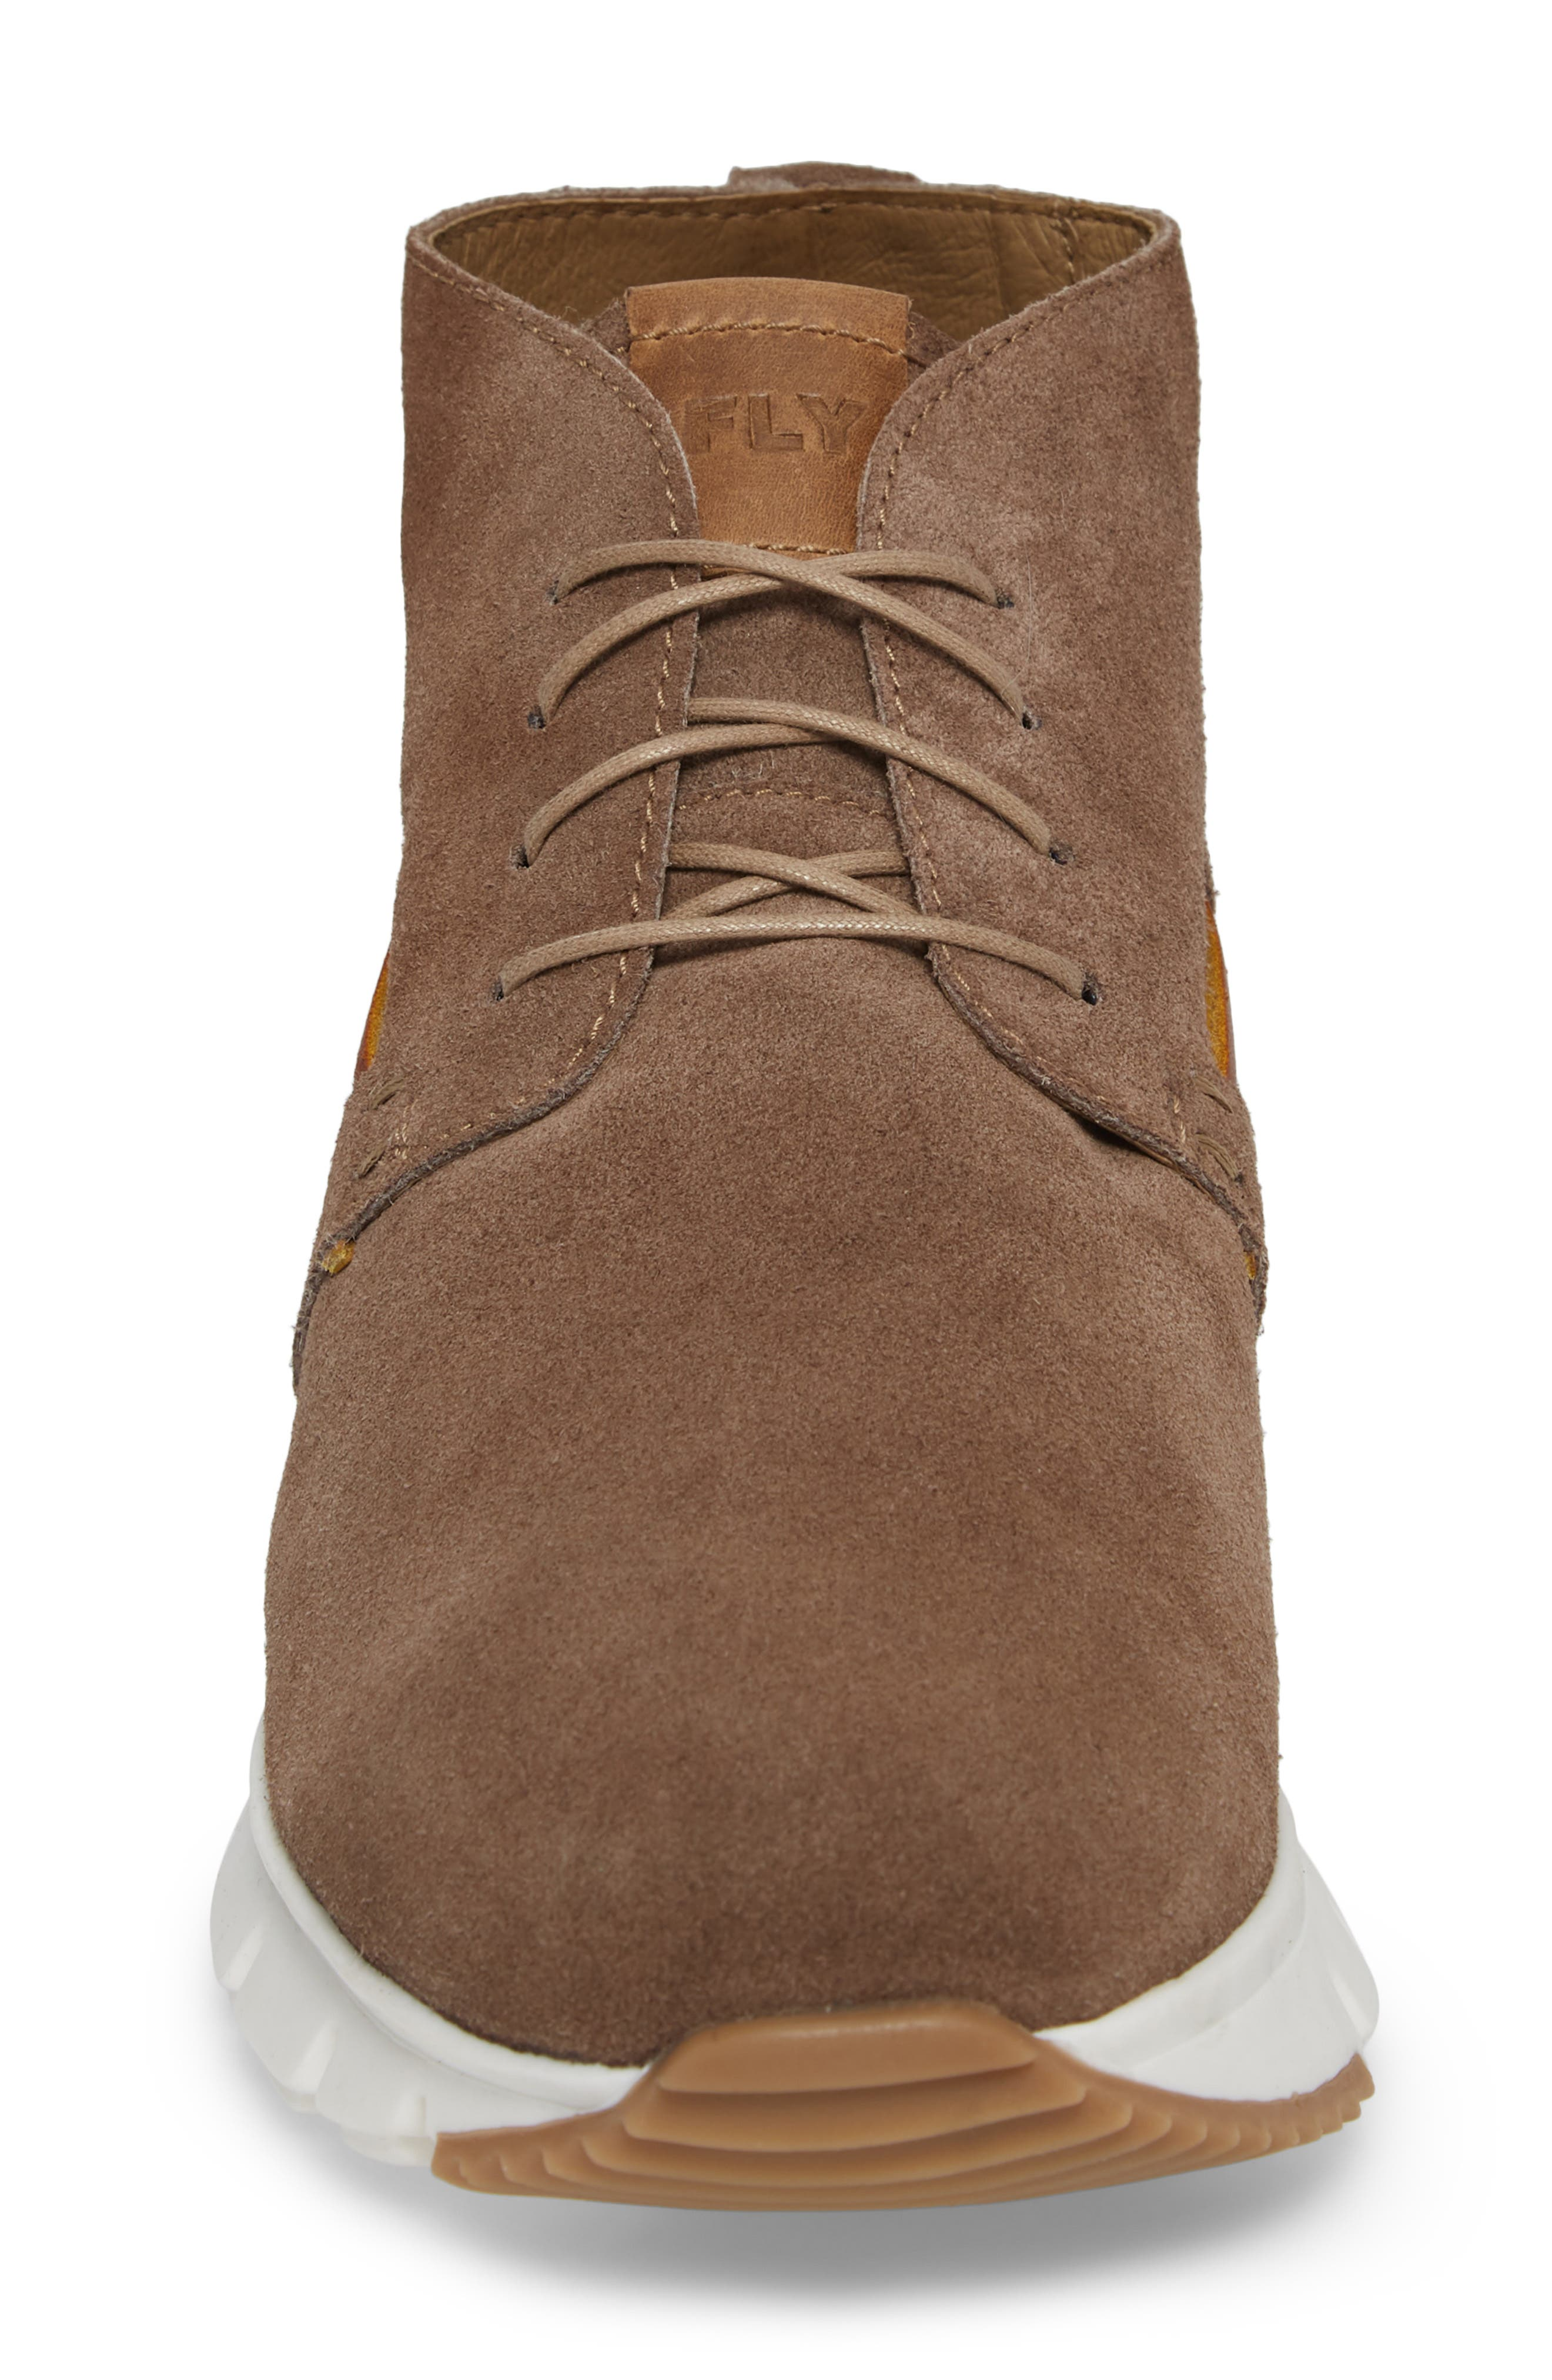 Sky High Top Sneaker,                             Alternate thumbnail 4, color,                             TAUPE SUEDE